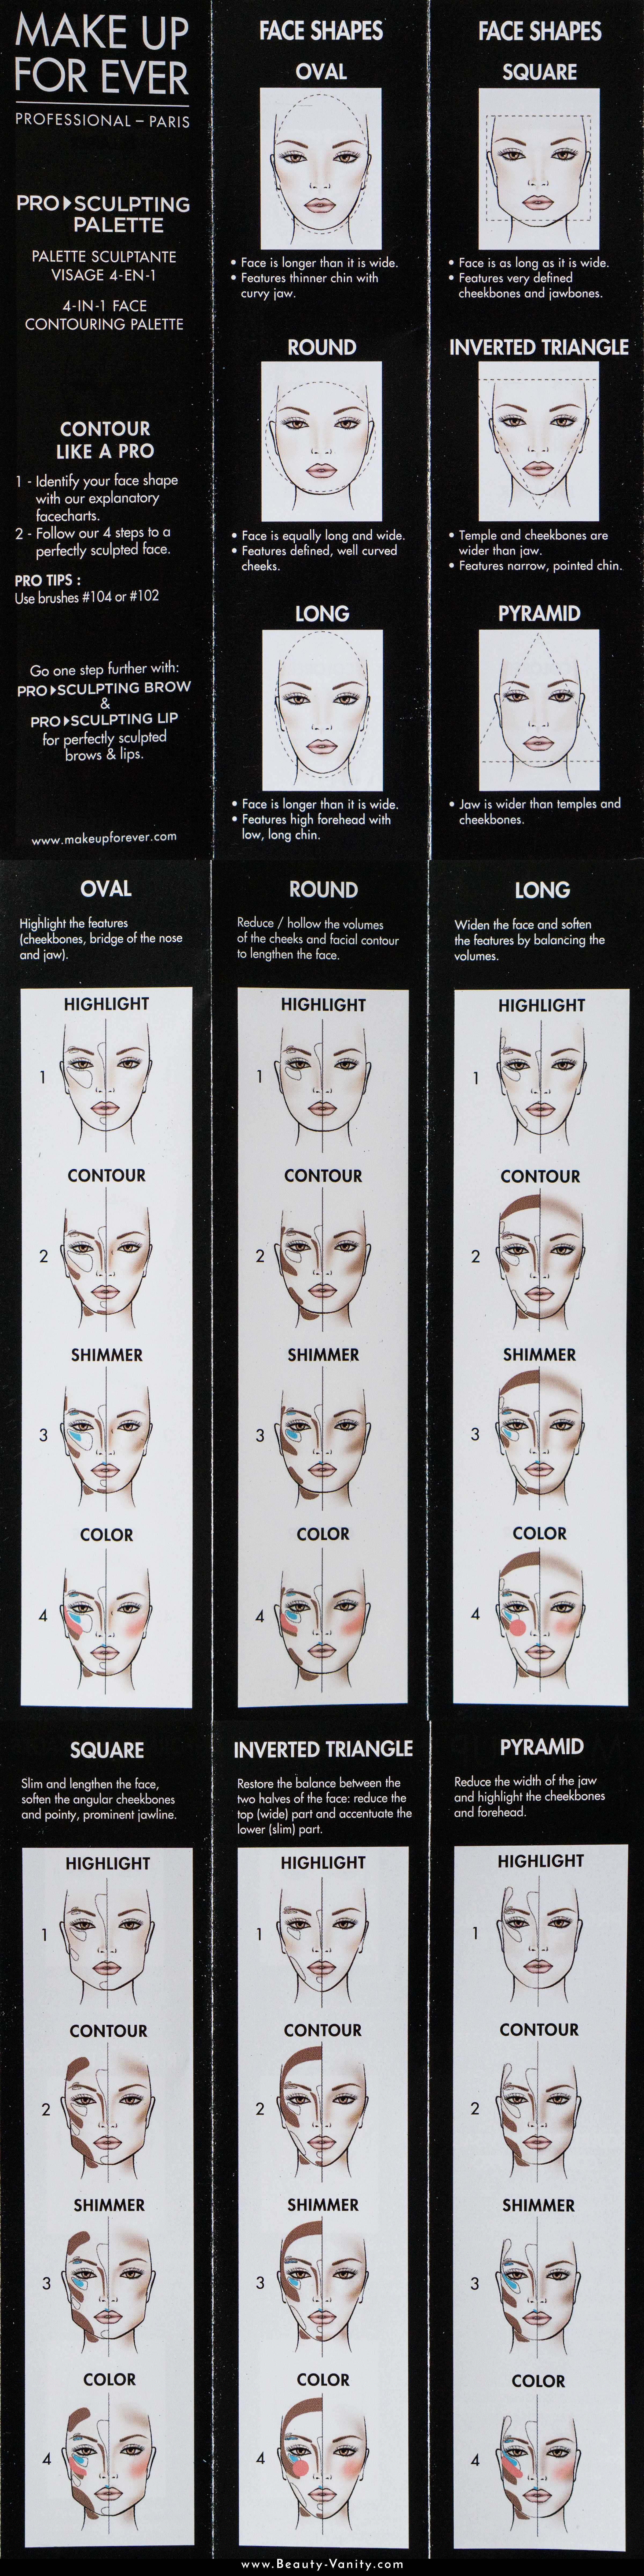 Make Up For Ever Pro Sculpting Face Palette Review ...